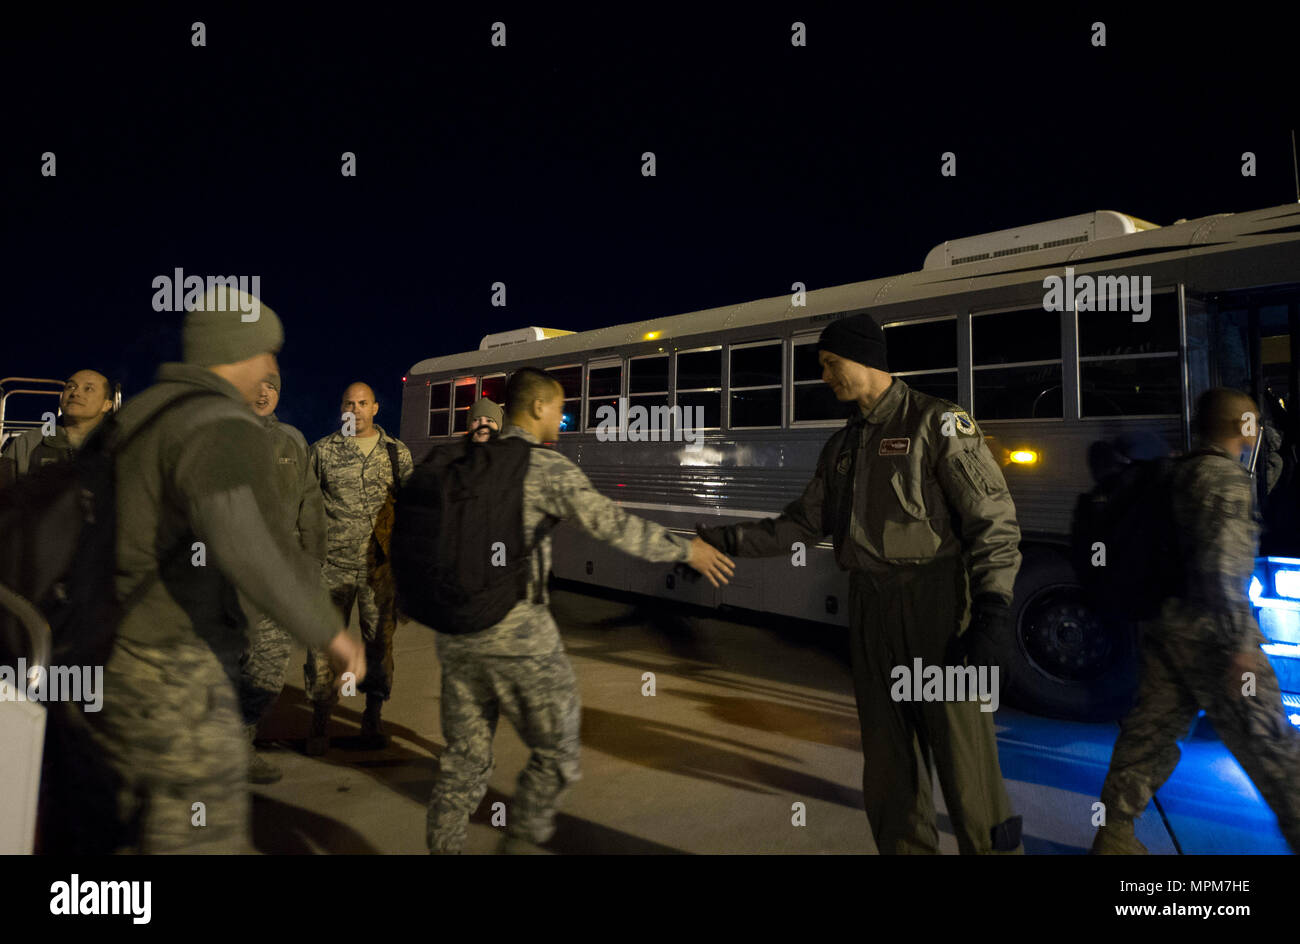 Air Force Lt. Col. David Skalicky, 90th Fighter Squadron commander, greets Airmen after arriving back from Royal Australian Air Force Base Tindal, Northern Territory, Australia, March 18, 2017 at Joint Base Elmendorf-Richardson, Alaska. More than 200 Airmen participated in a bilateral exercise as part of the Enhanced Air Cooperation initiative. (U.S. Air Force photo by Staff Sgt. Sheila deVera) - Stock Image